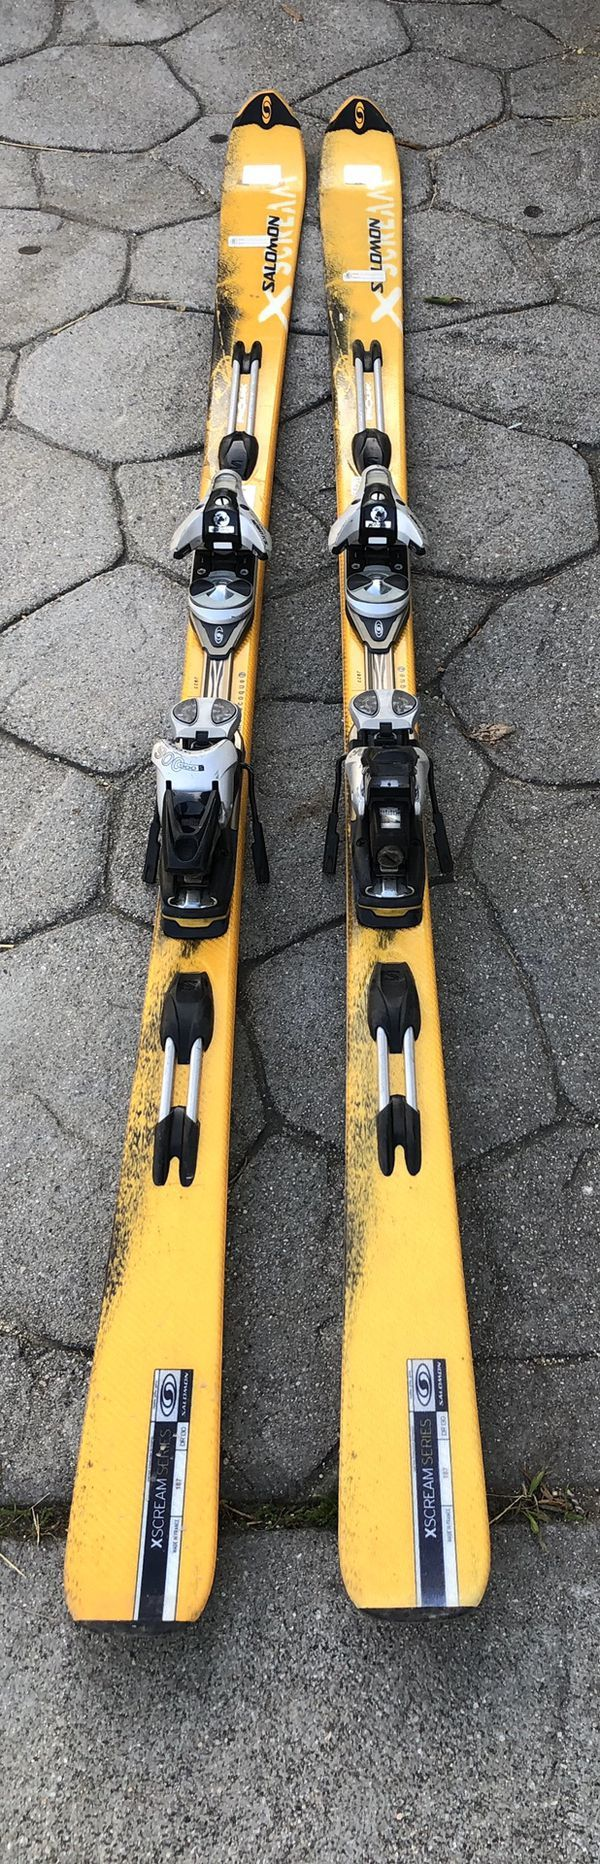 Salomon X Scream Series Monoque Technology Skis With Bindings 187 Dr 130 For Sale In Los Angeles Ca Offerup In 2020 Scream Series Salomon Skiing